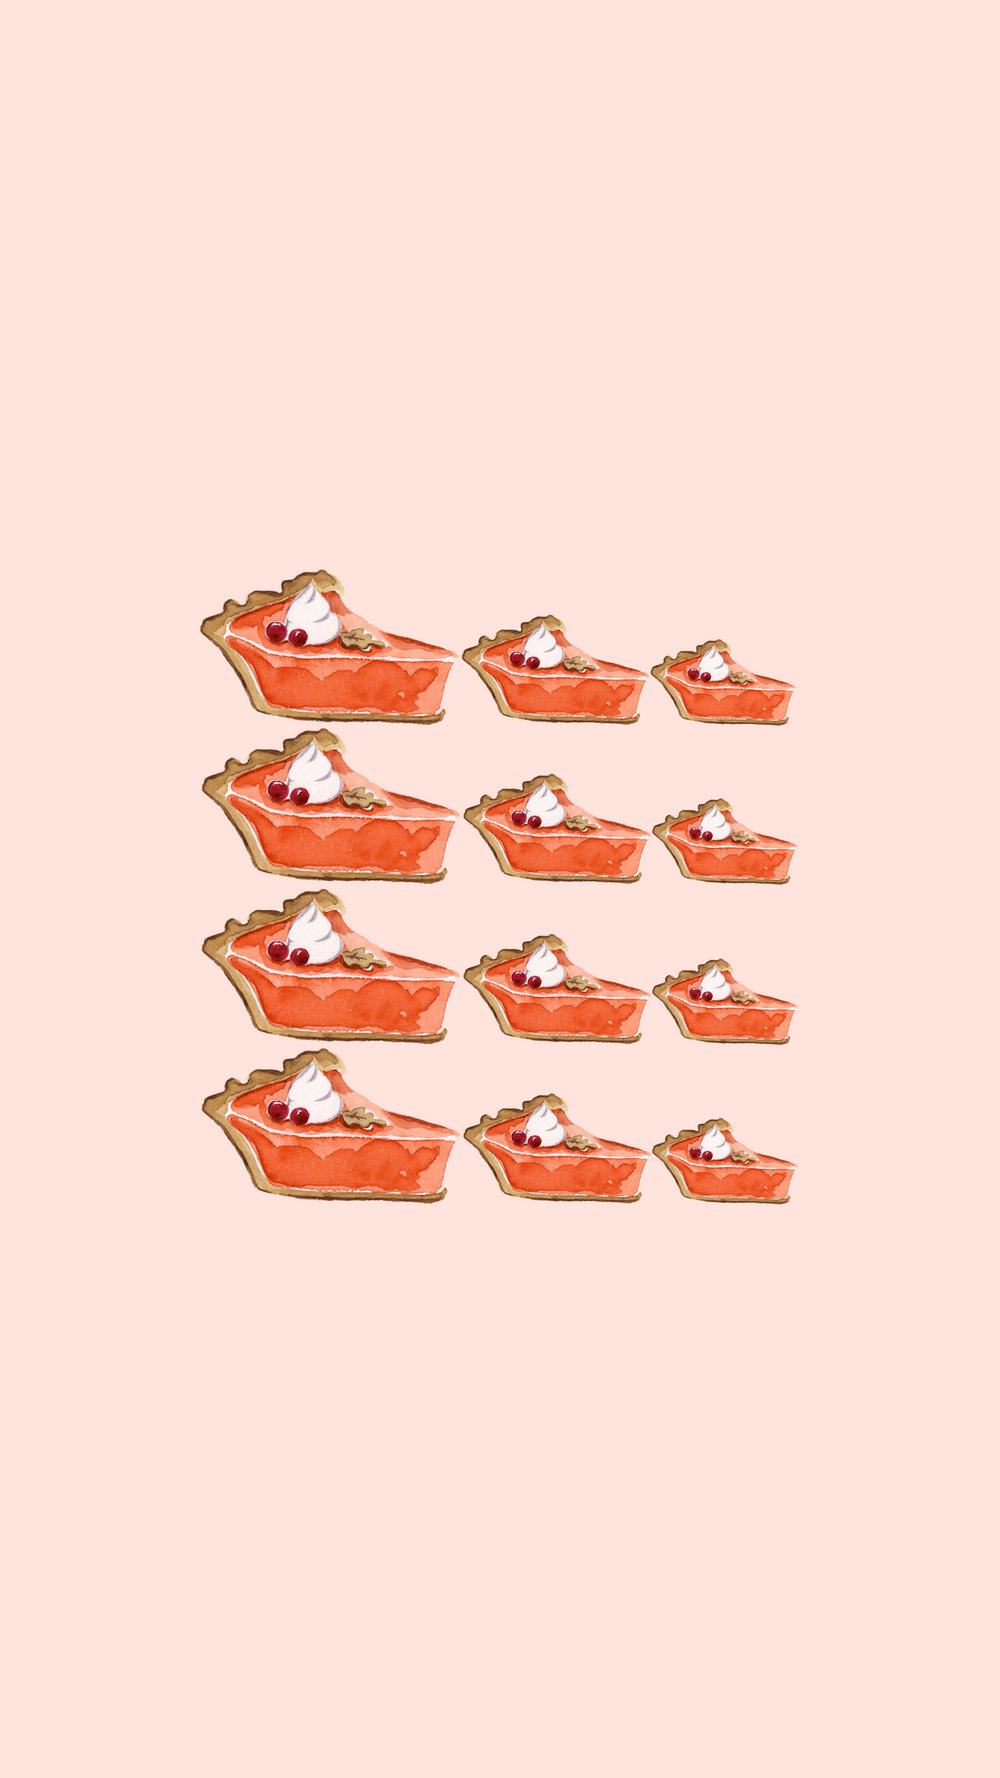 Cute-Fall-Phone-Wallpaper-Background-Pumpkin-Pie.jpg